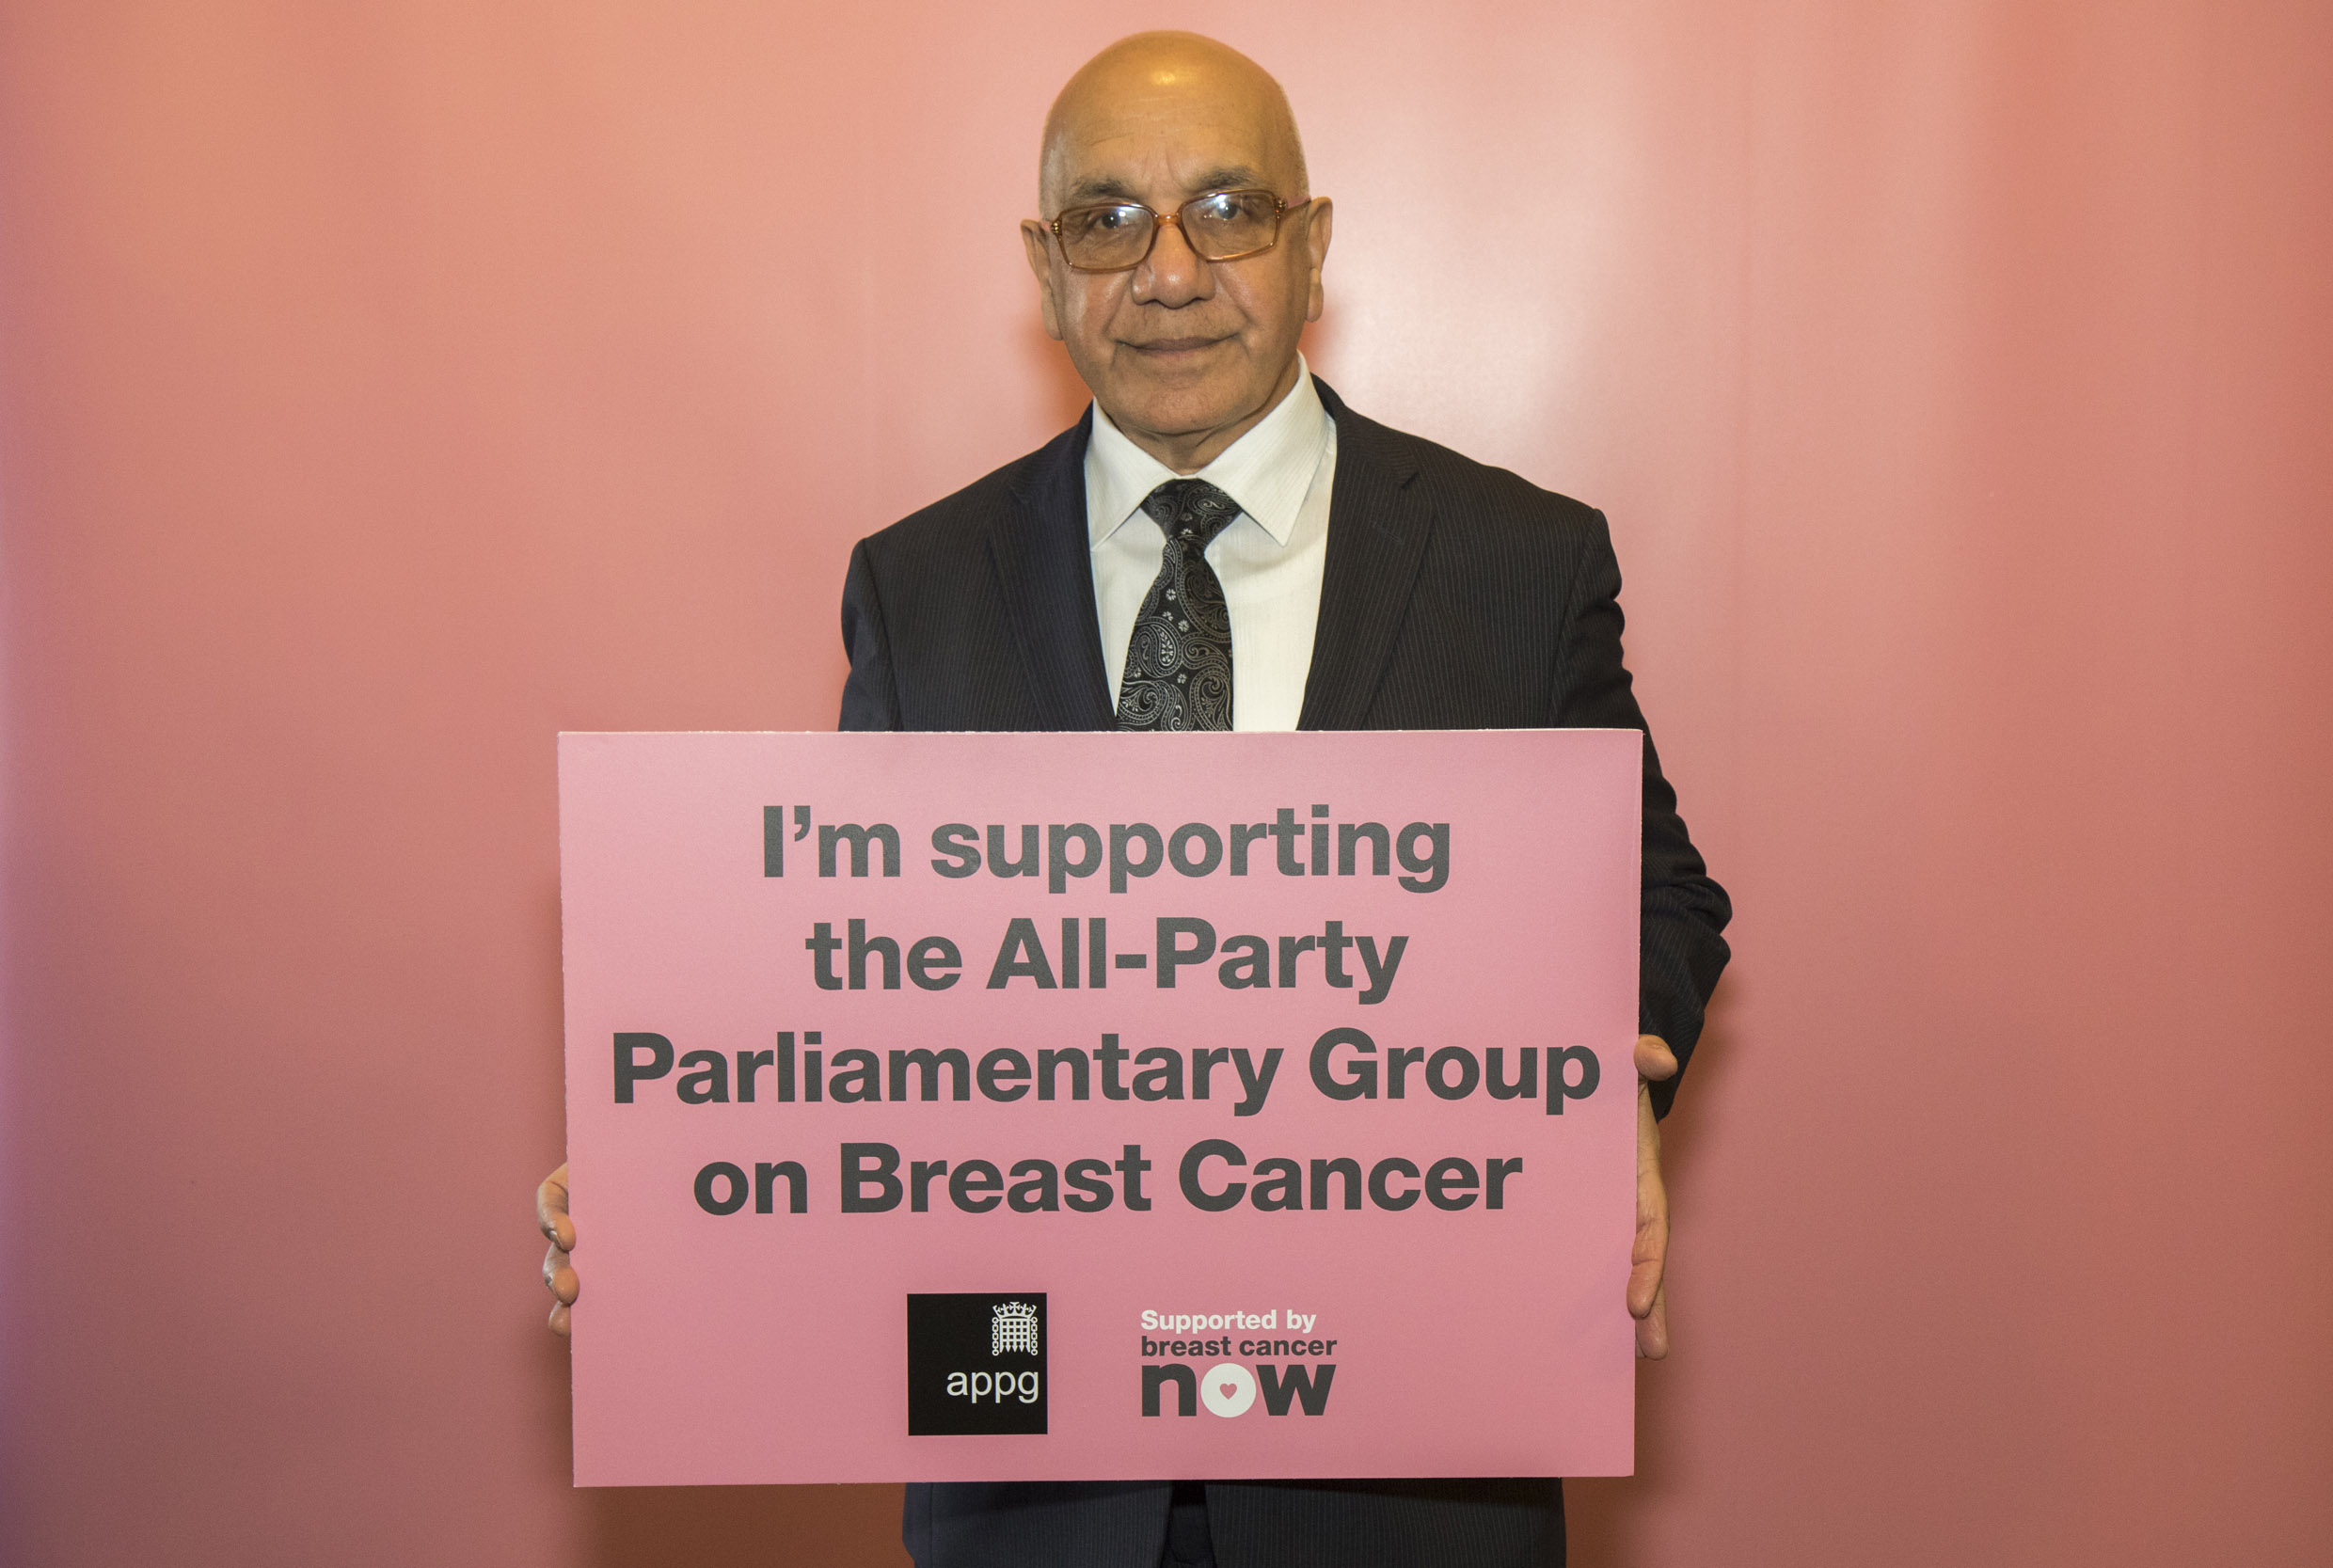 Breast_Cancer_Now_.jpg